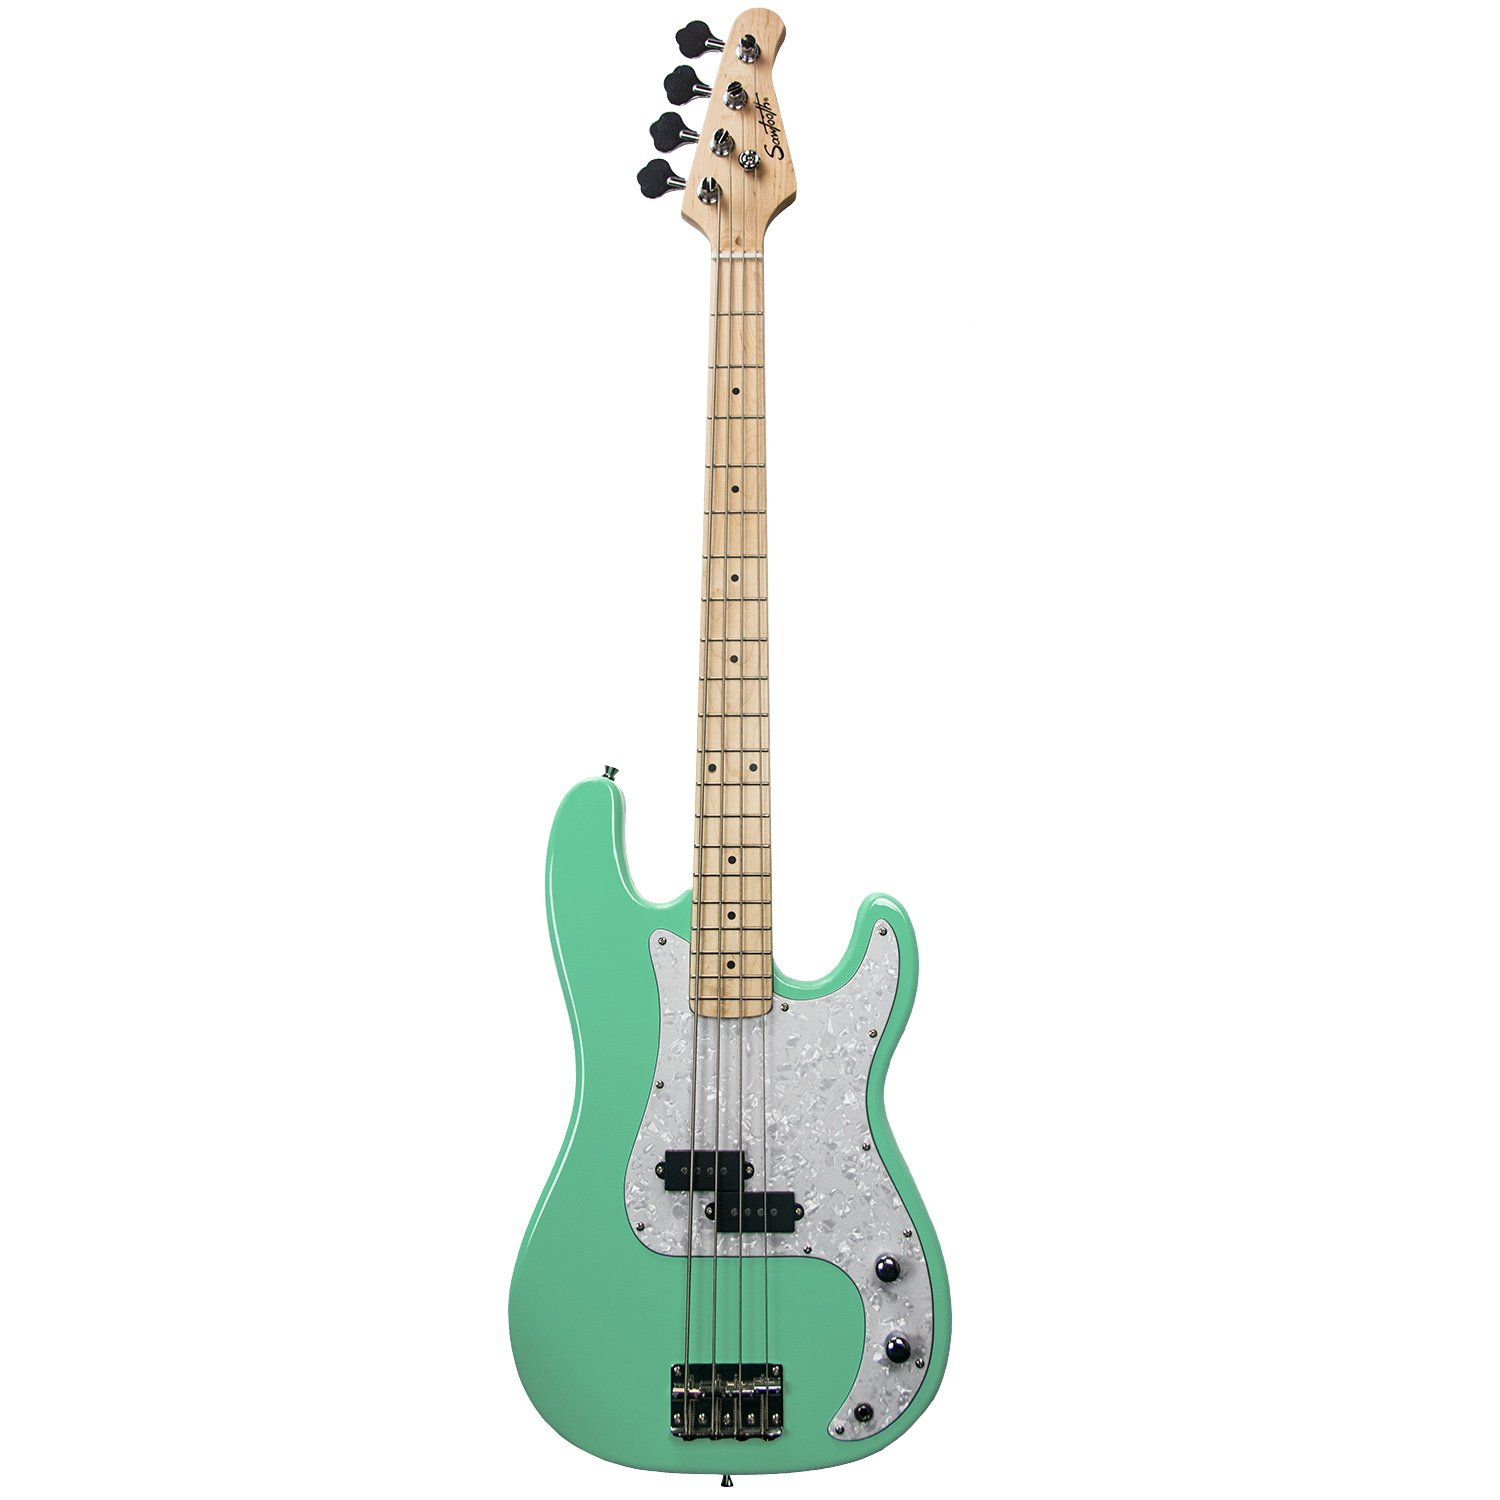 Sawtooth ST-PB-SGRP EP Series Electric Bass Guitar, Surf Green with White Pearloid Pickguard